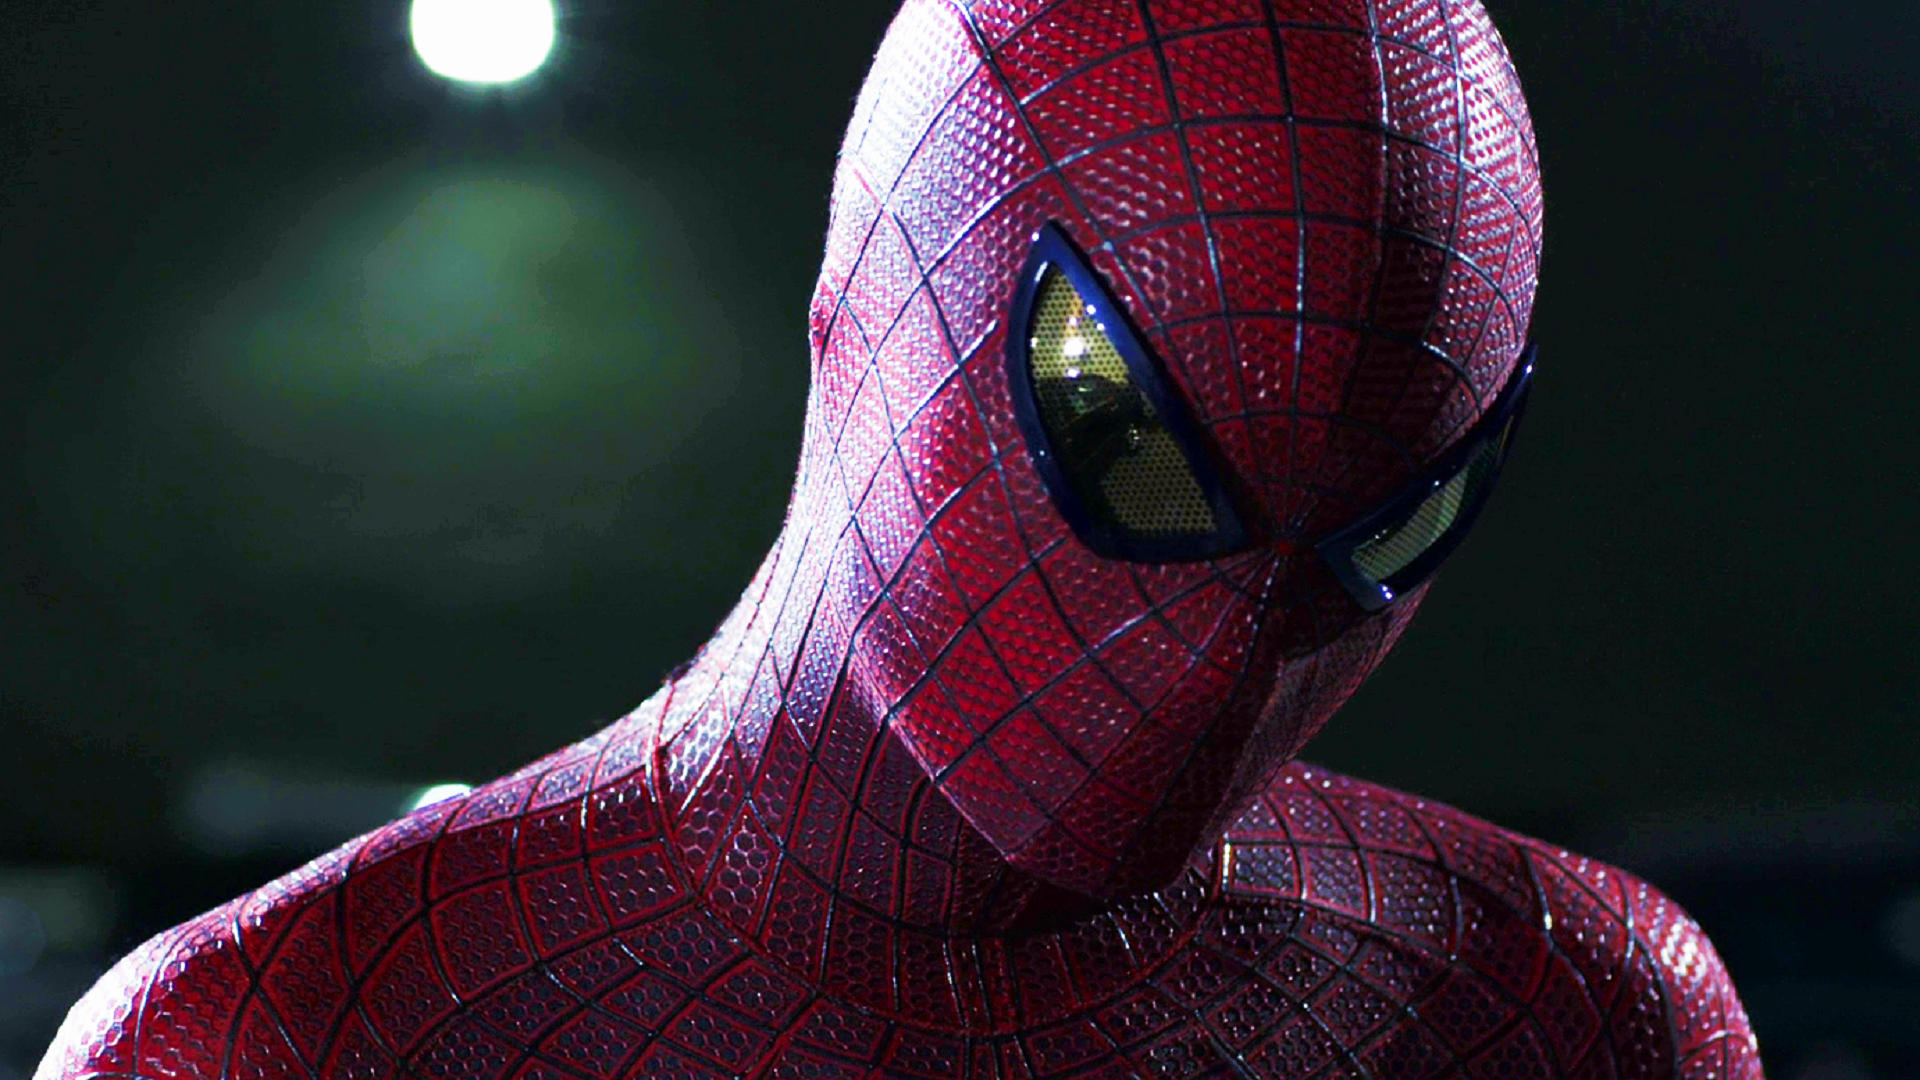 The Amazing Spider Man Hd Wallpaper Background Image 1920x1080